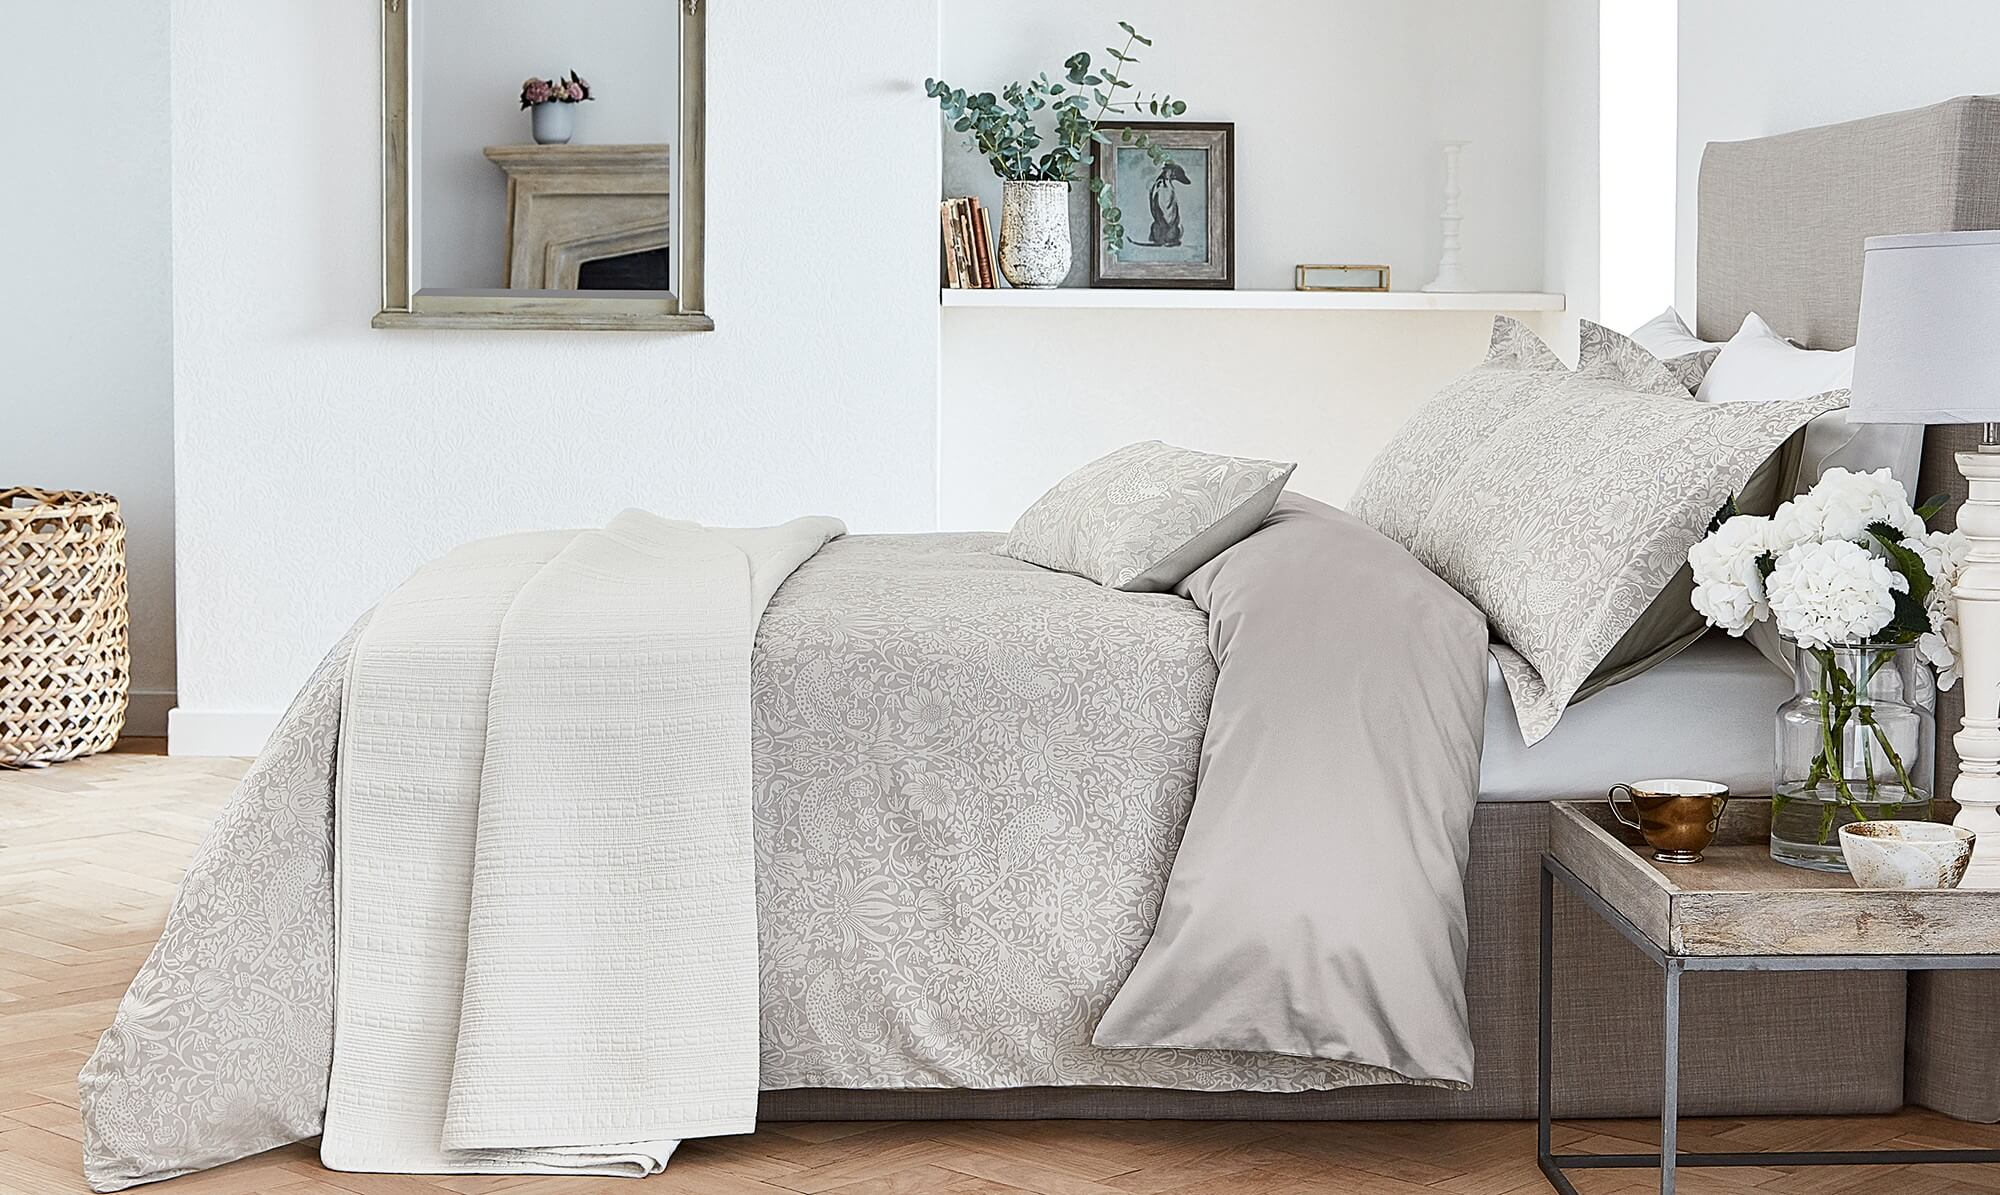 Grey William Morris bedding - Fishpools